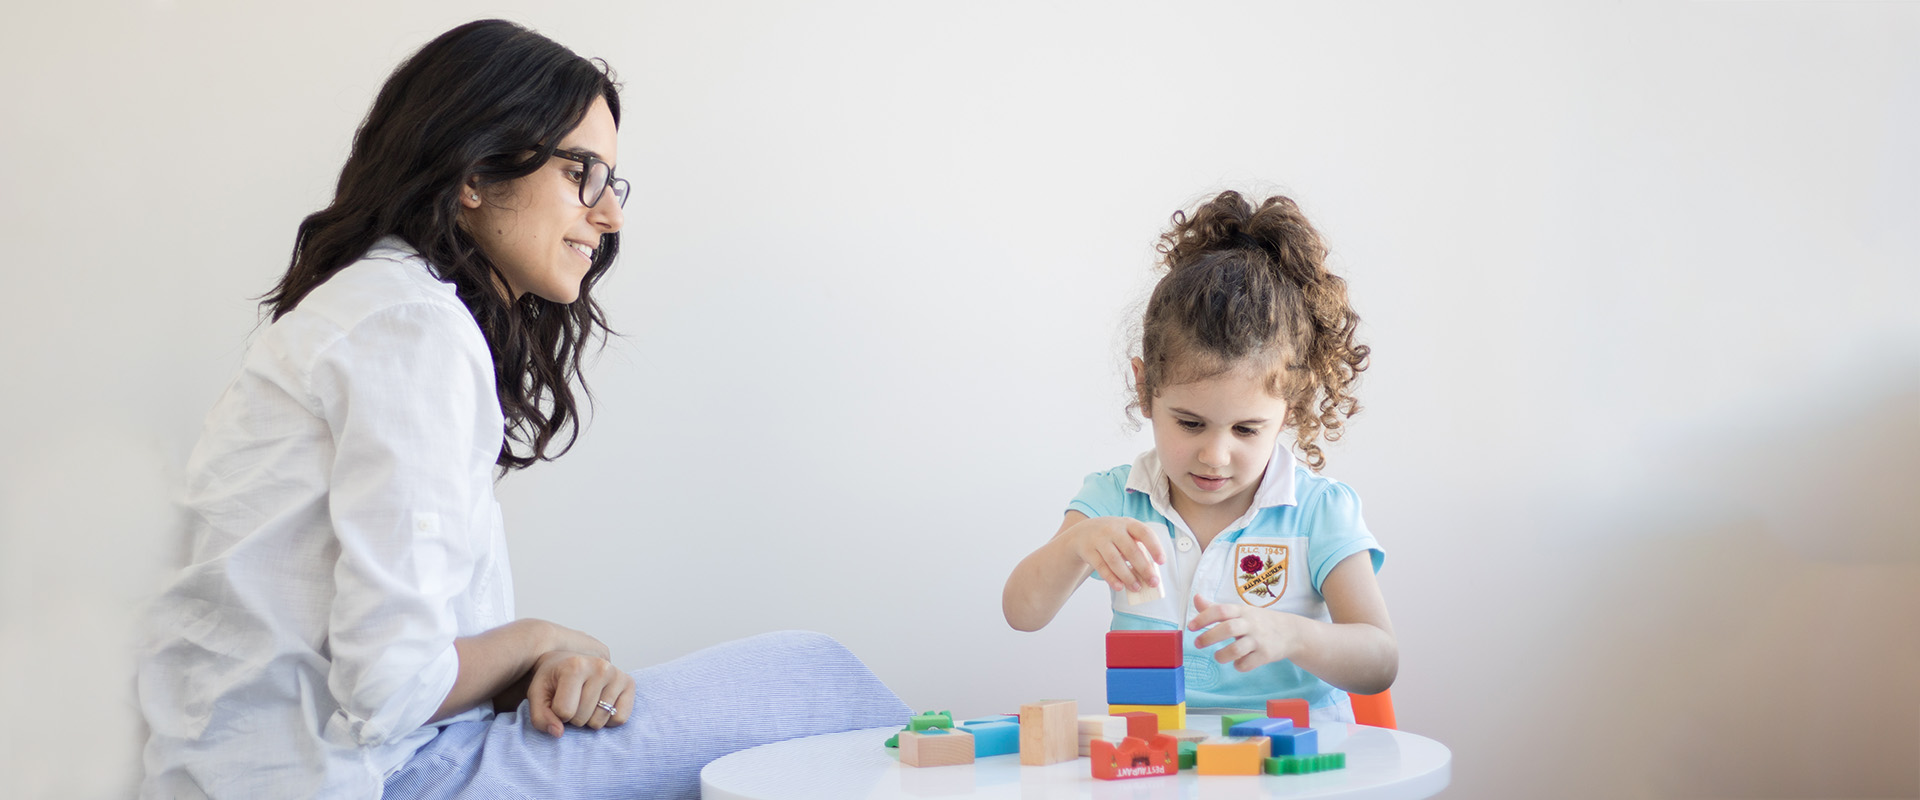 early childhood services norway It is expected that india's ecce programs that offer health and nutrition services will  mid decade assessment, early childhood care and education in india,.